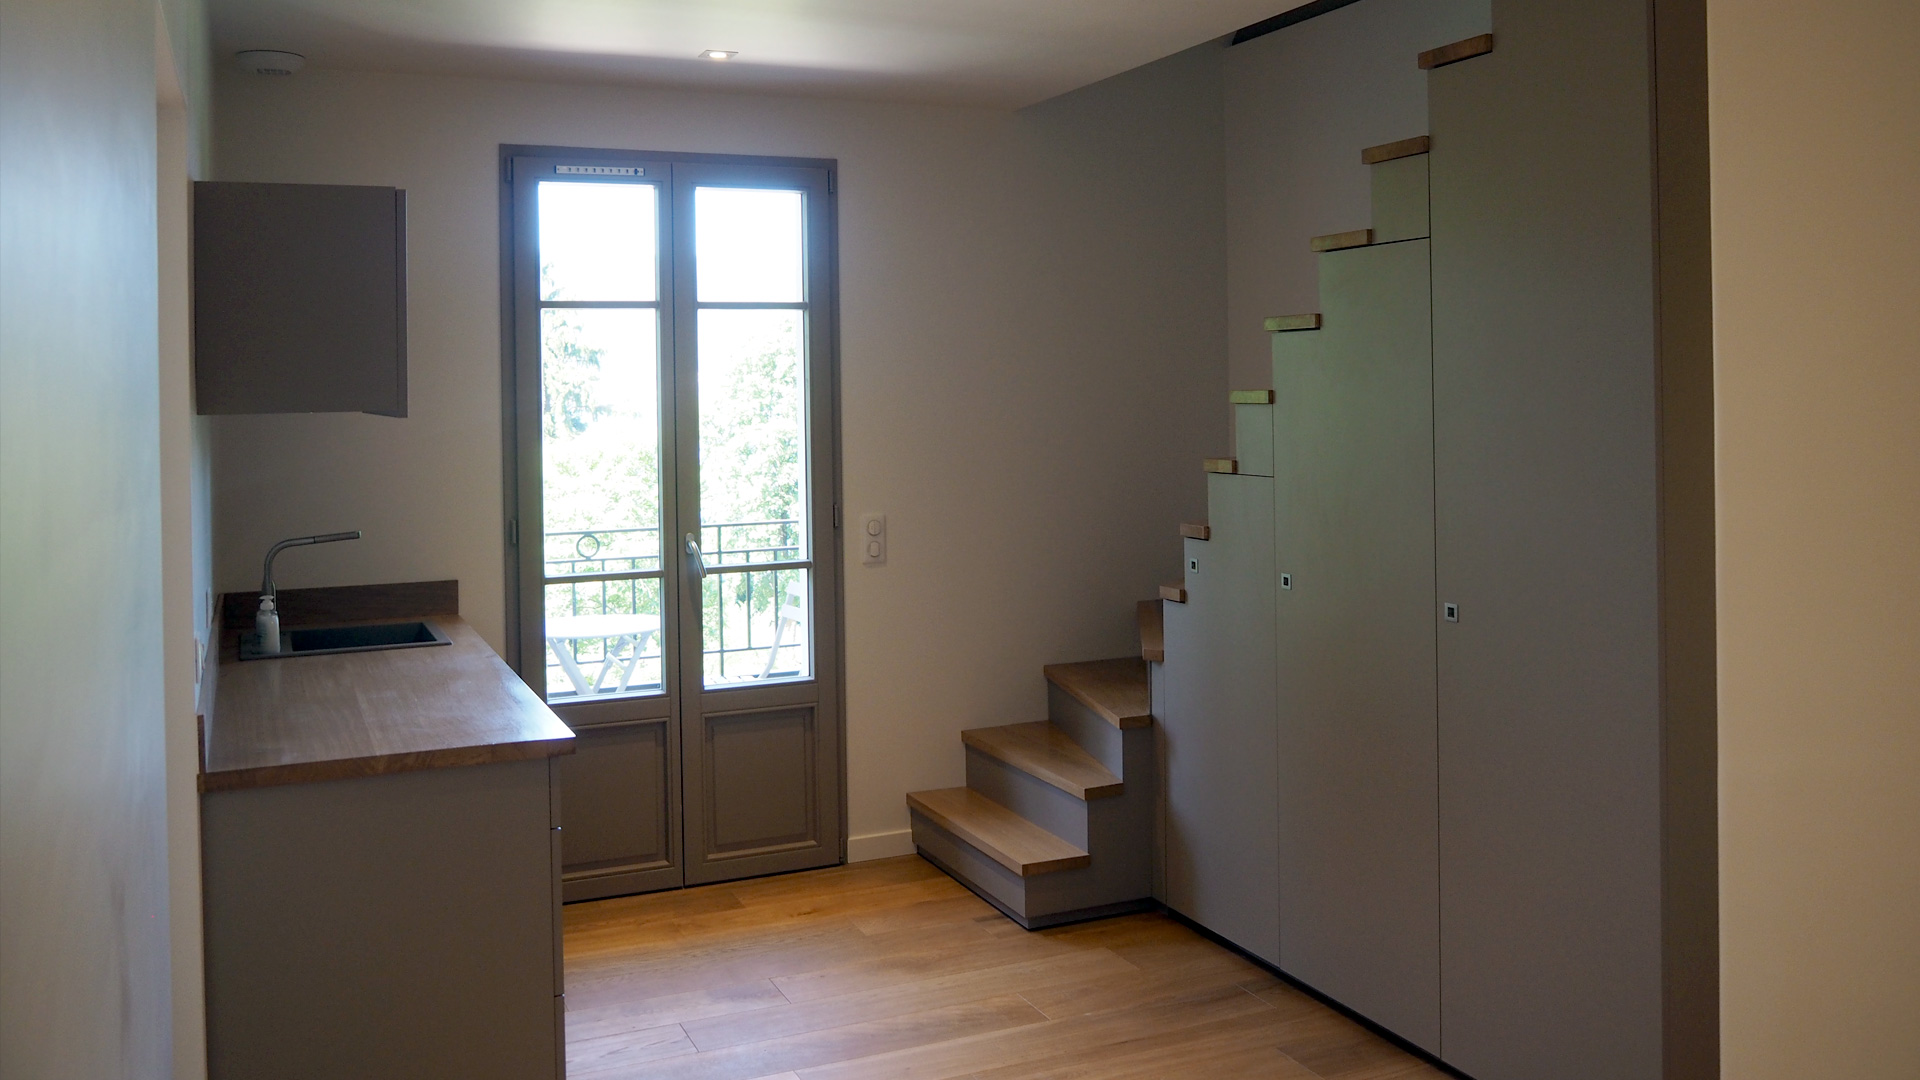 Id es travaux realisations r novation sur annecy r novation apparte - Idee renovation maison ...